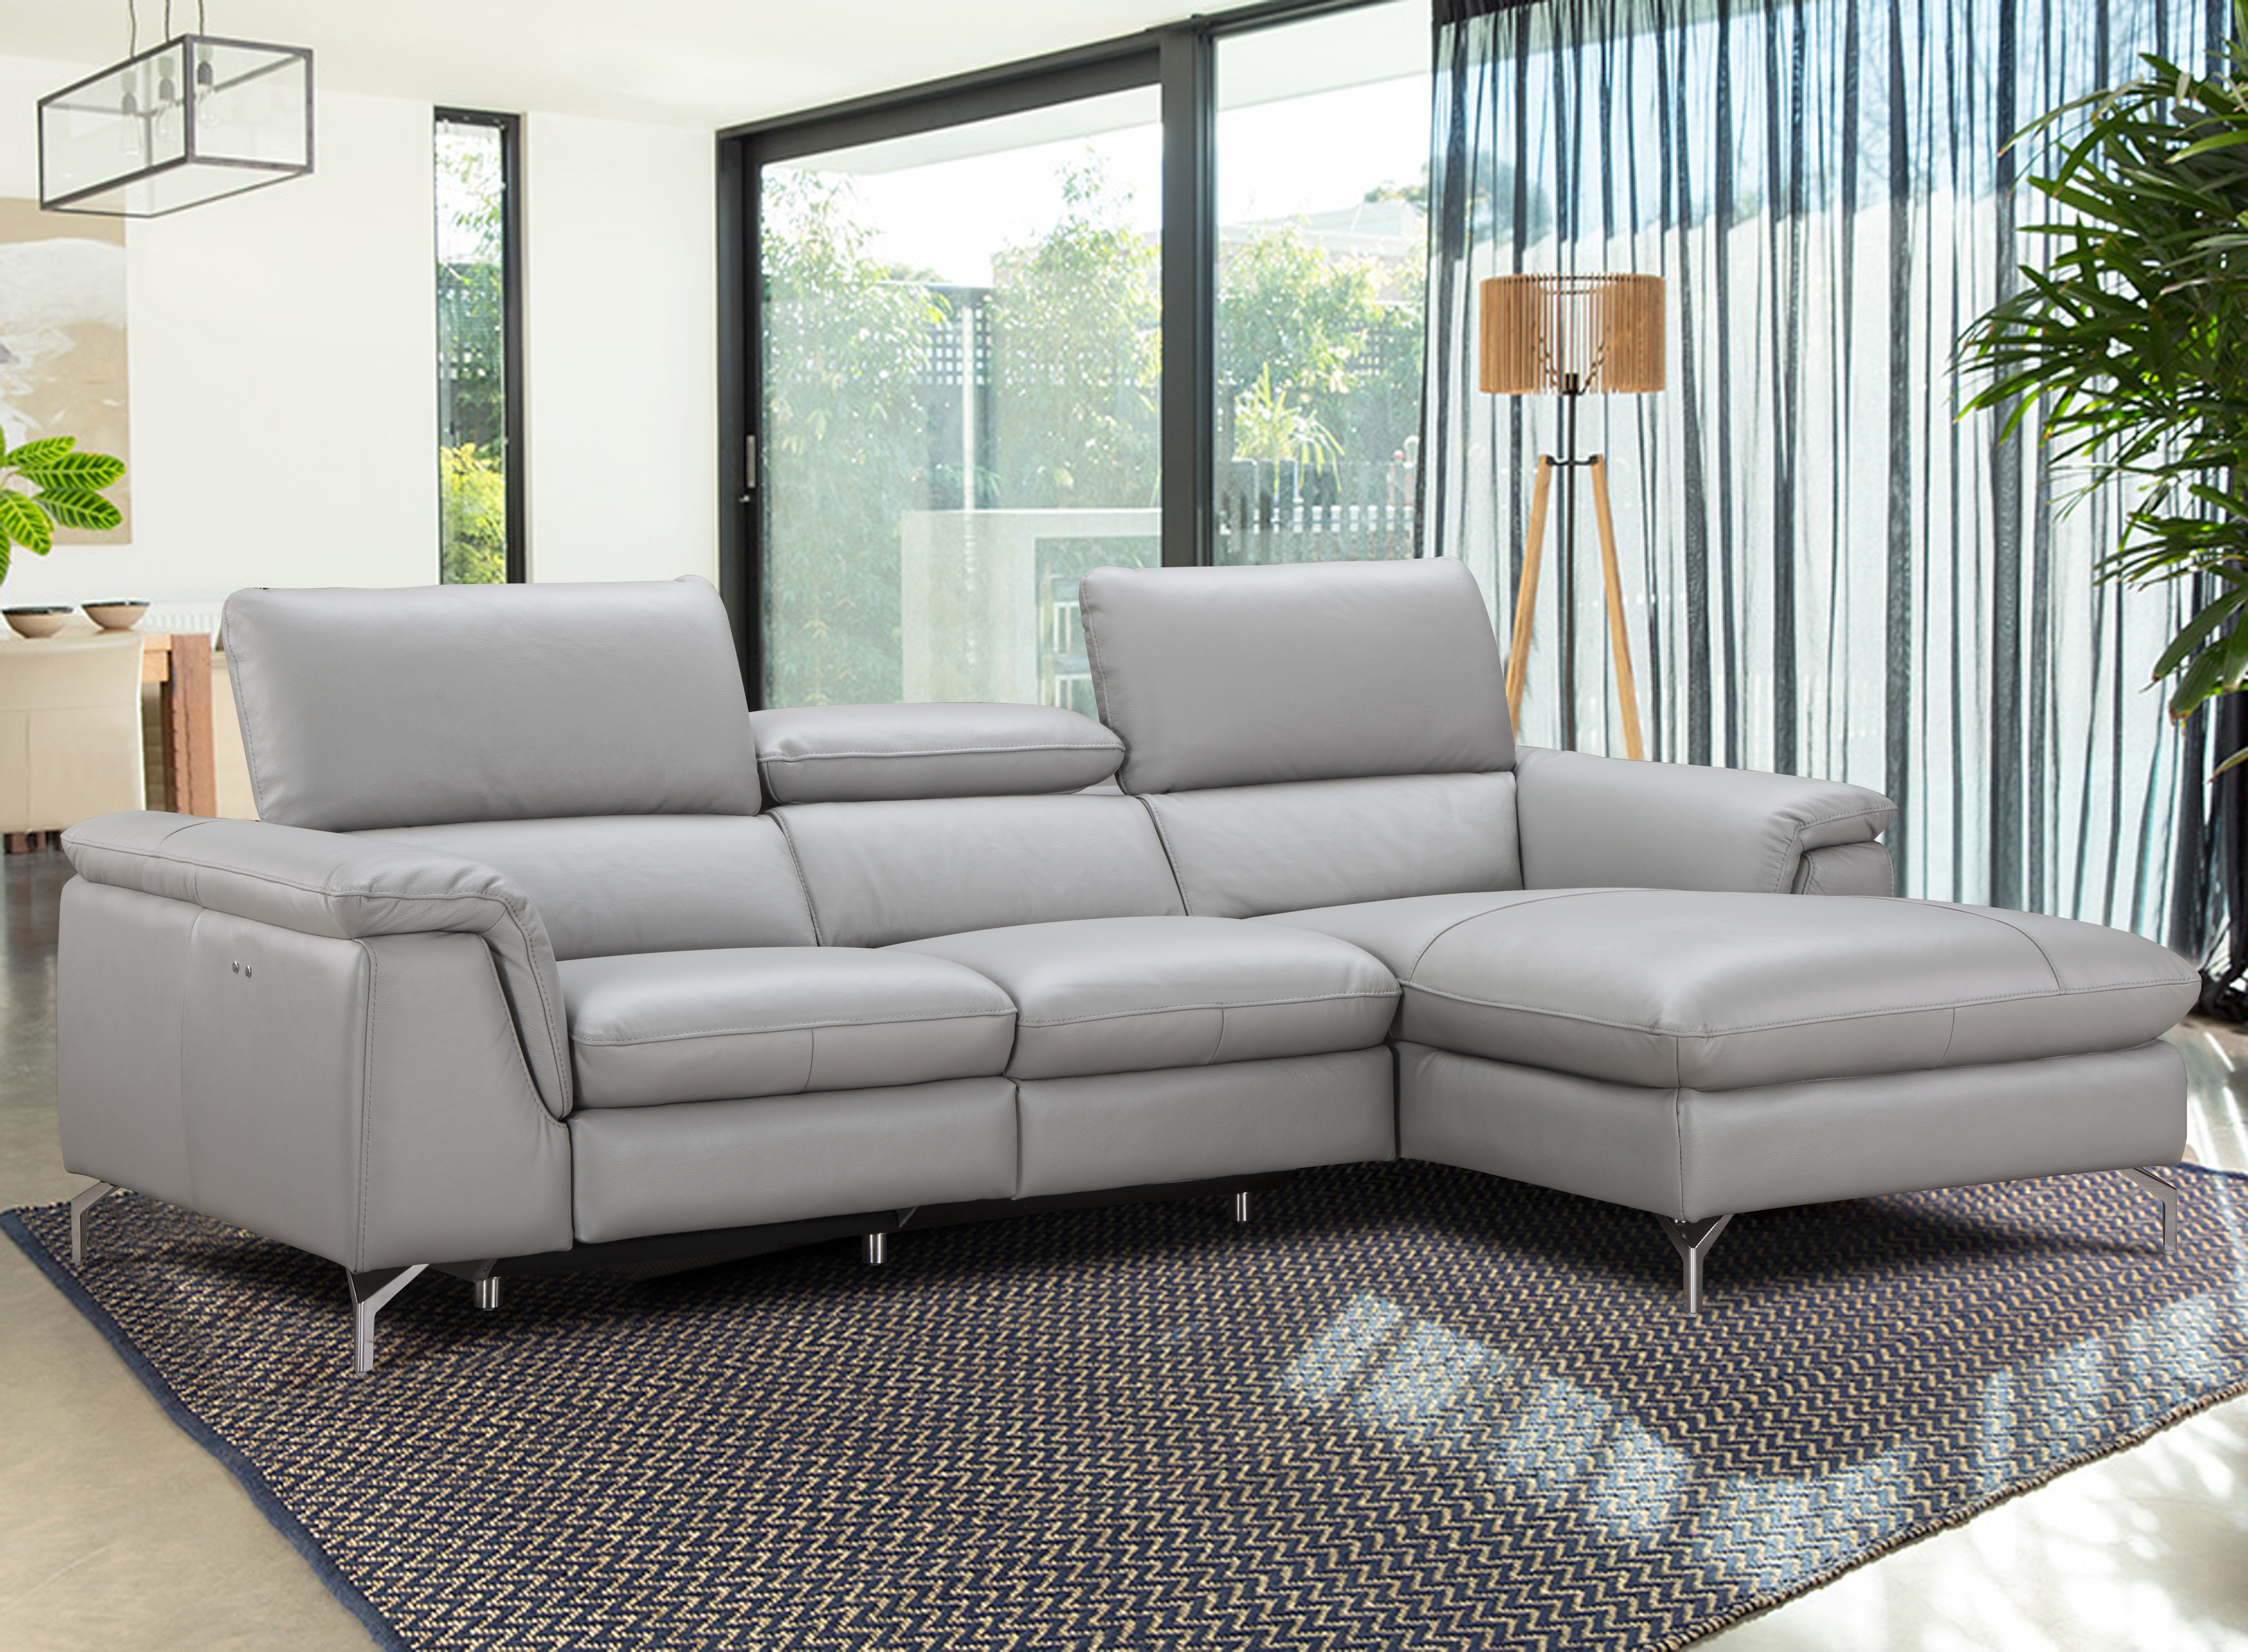 Most Recent Adeline 3 Piece Sectionals For J&m Furniture Serena Leather Reclining Sectional & Reviews (View 15 of 20)